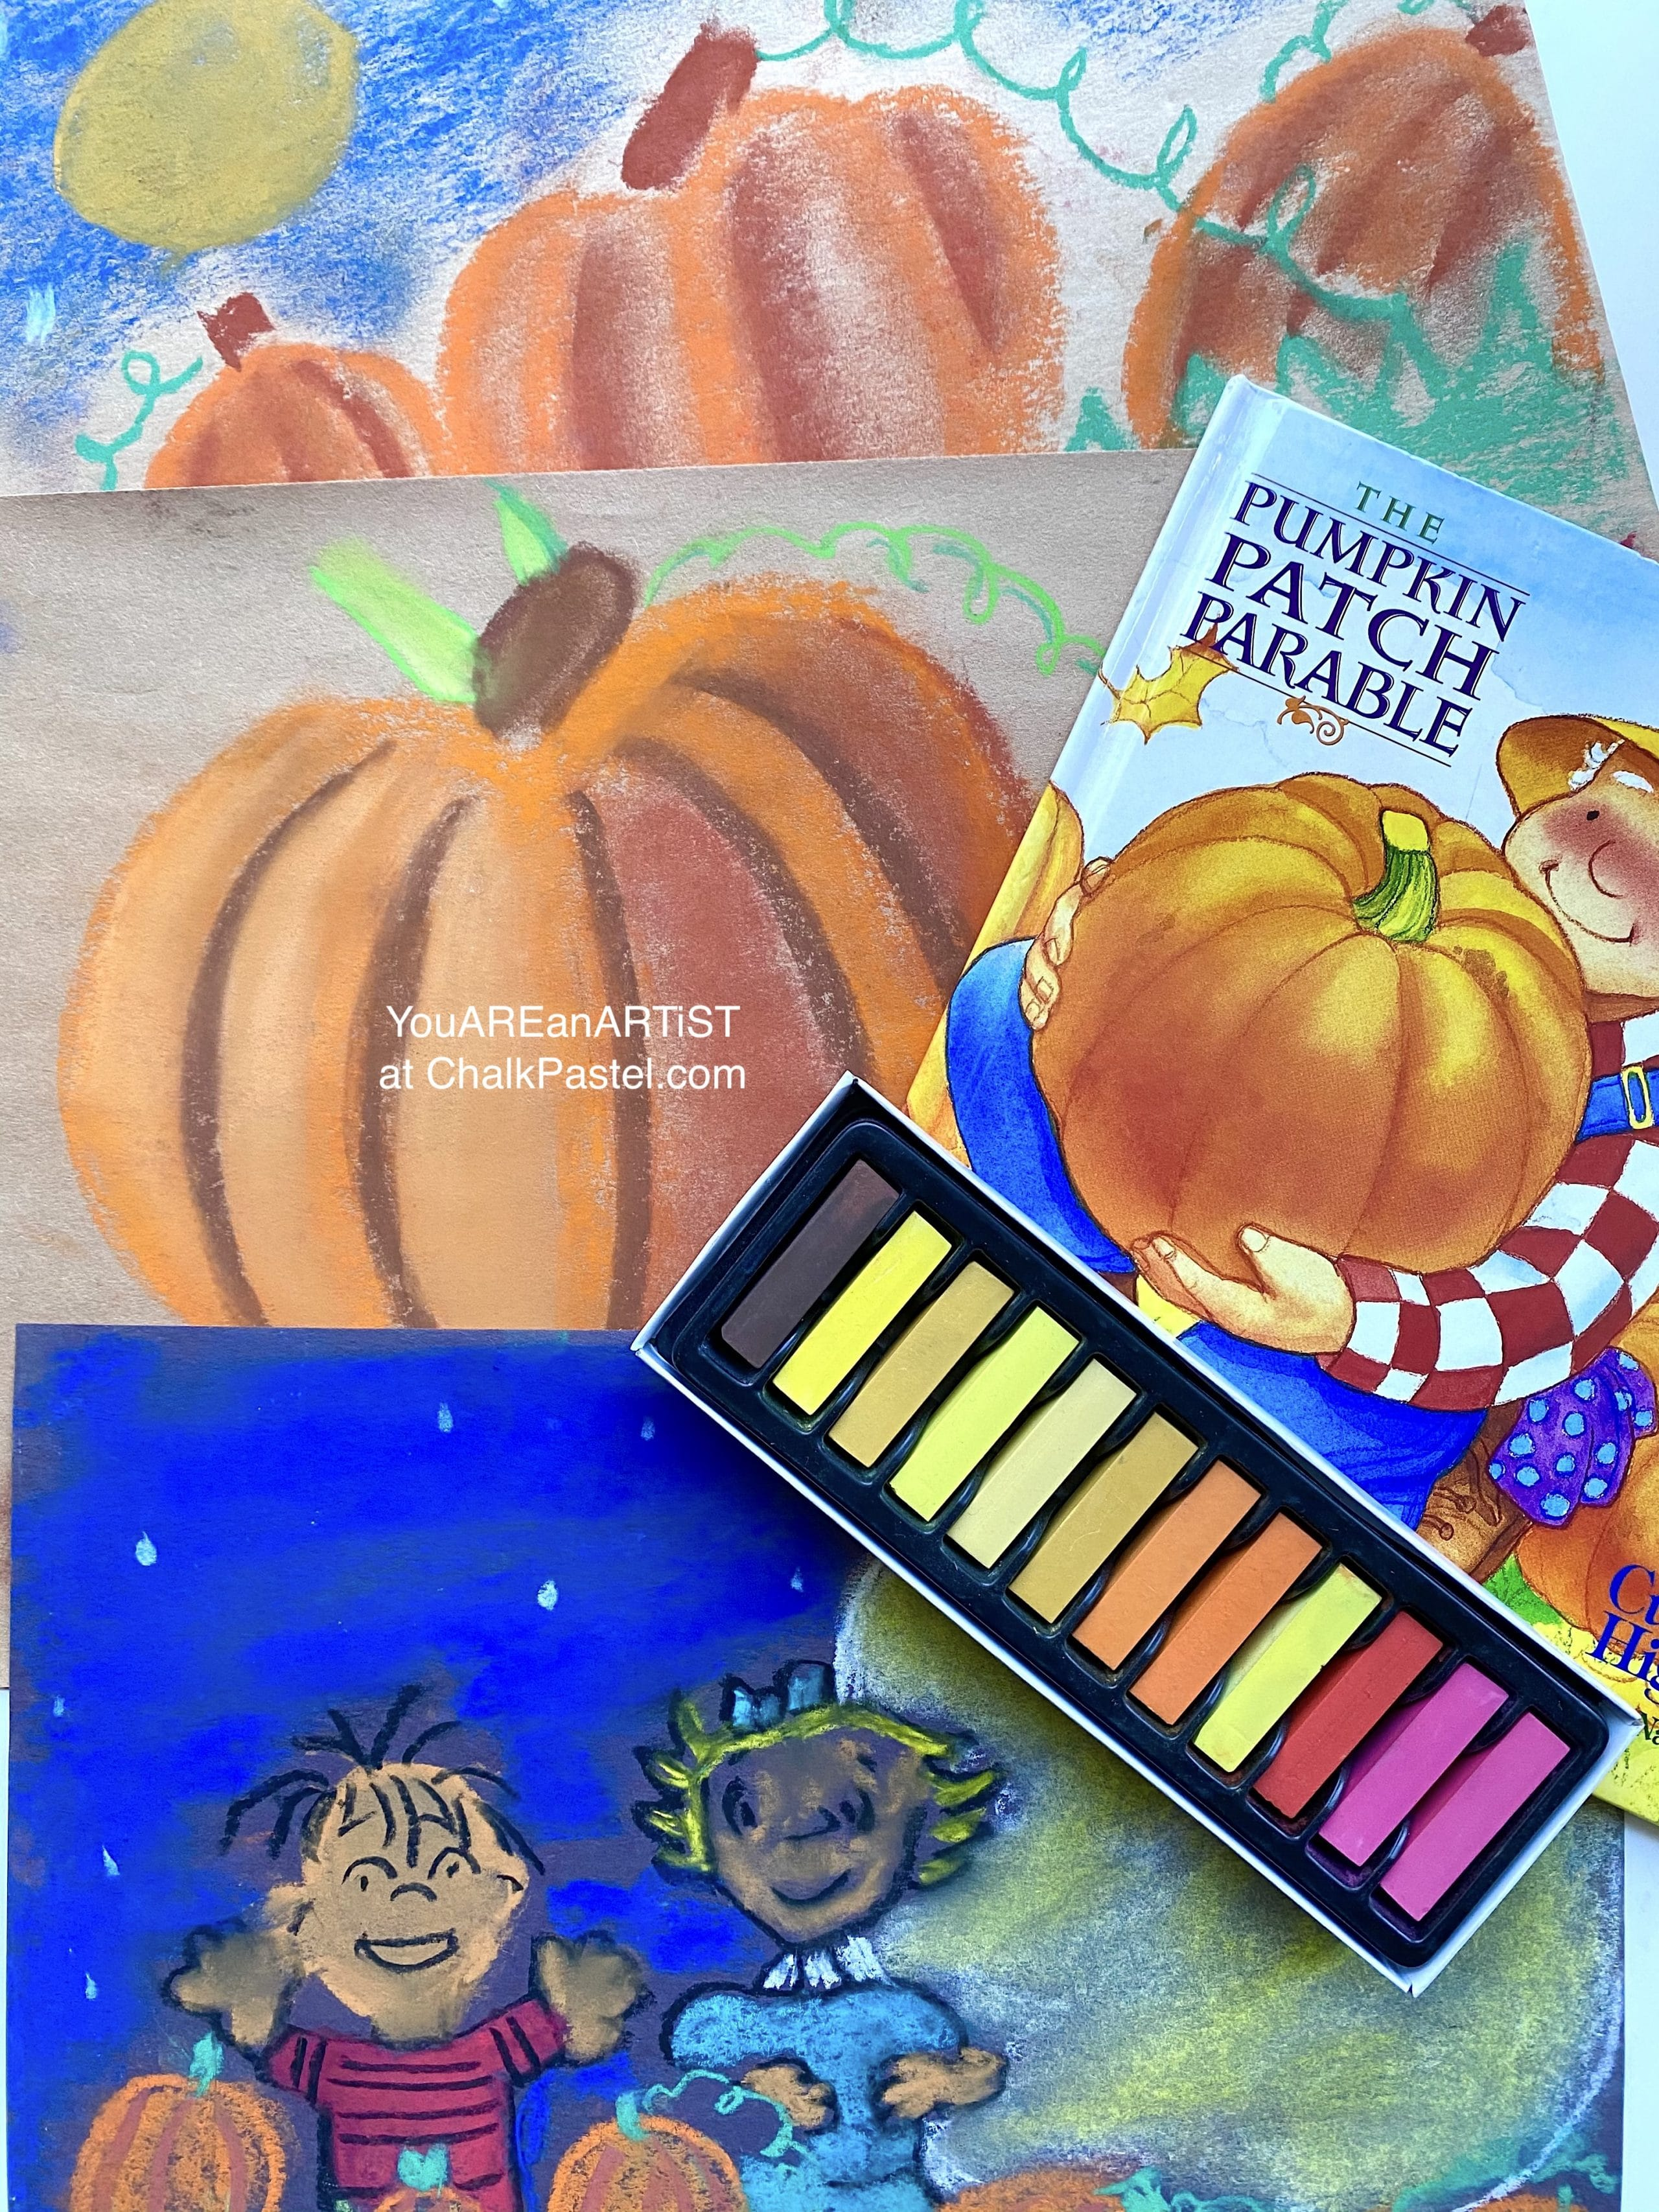 It's the Great Pumpkin Charlie Brown video art lesson! Nana's Fall pumpkin chalk pastel art lessons for all ages are always a favorite. Including Pumpkin Patch Parable.